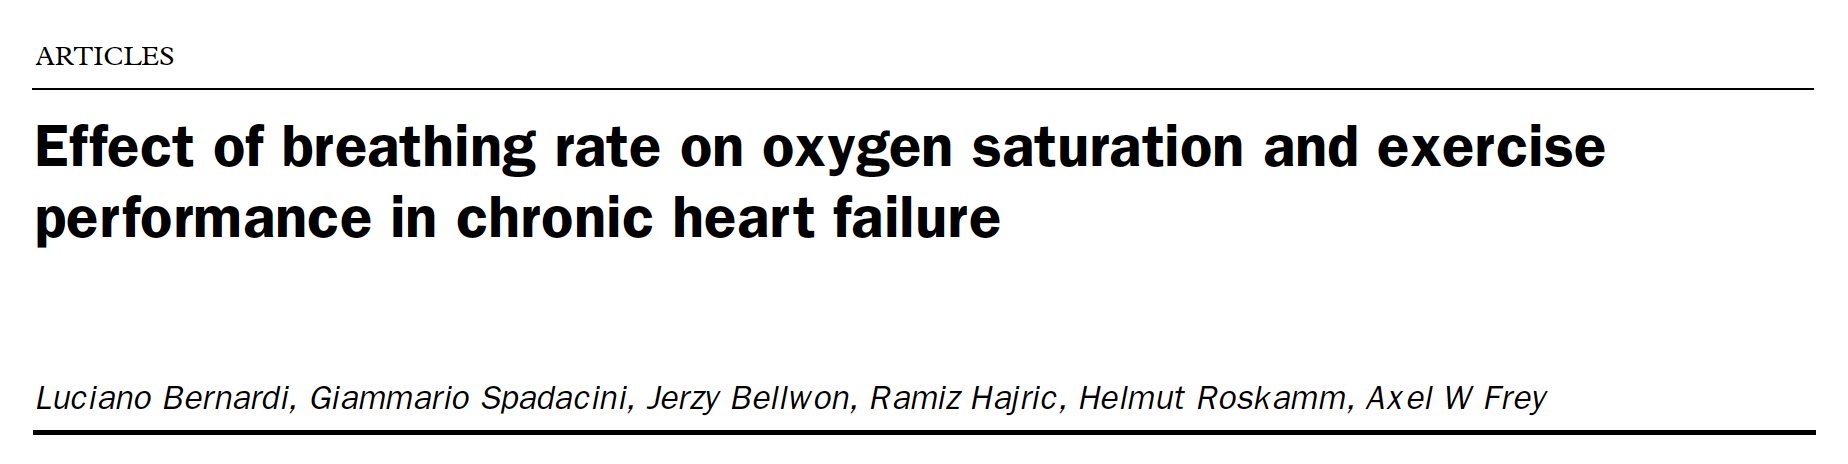 - Slow breathing reduces spontaneous breathing rate, increases resting oxygen saturation, and improves exercise performance in chronic heart failure patients